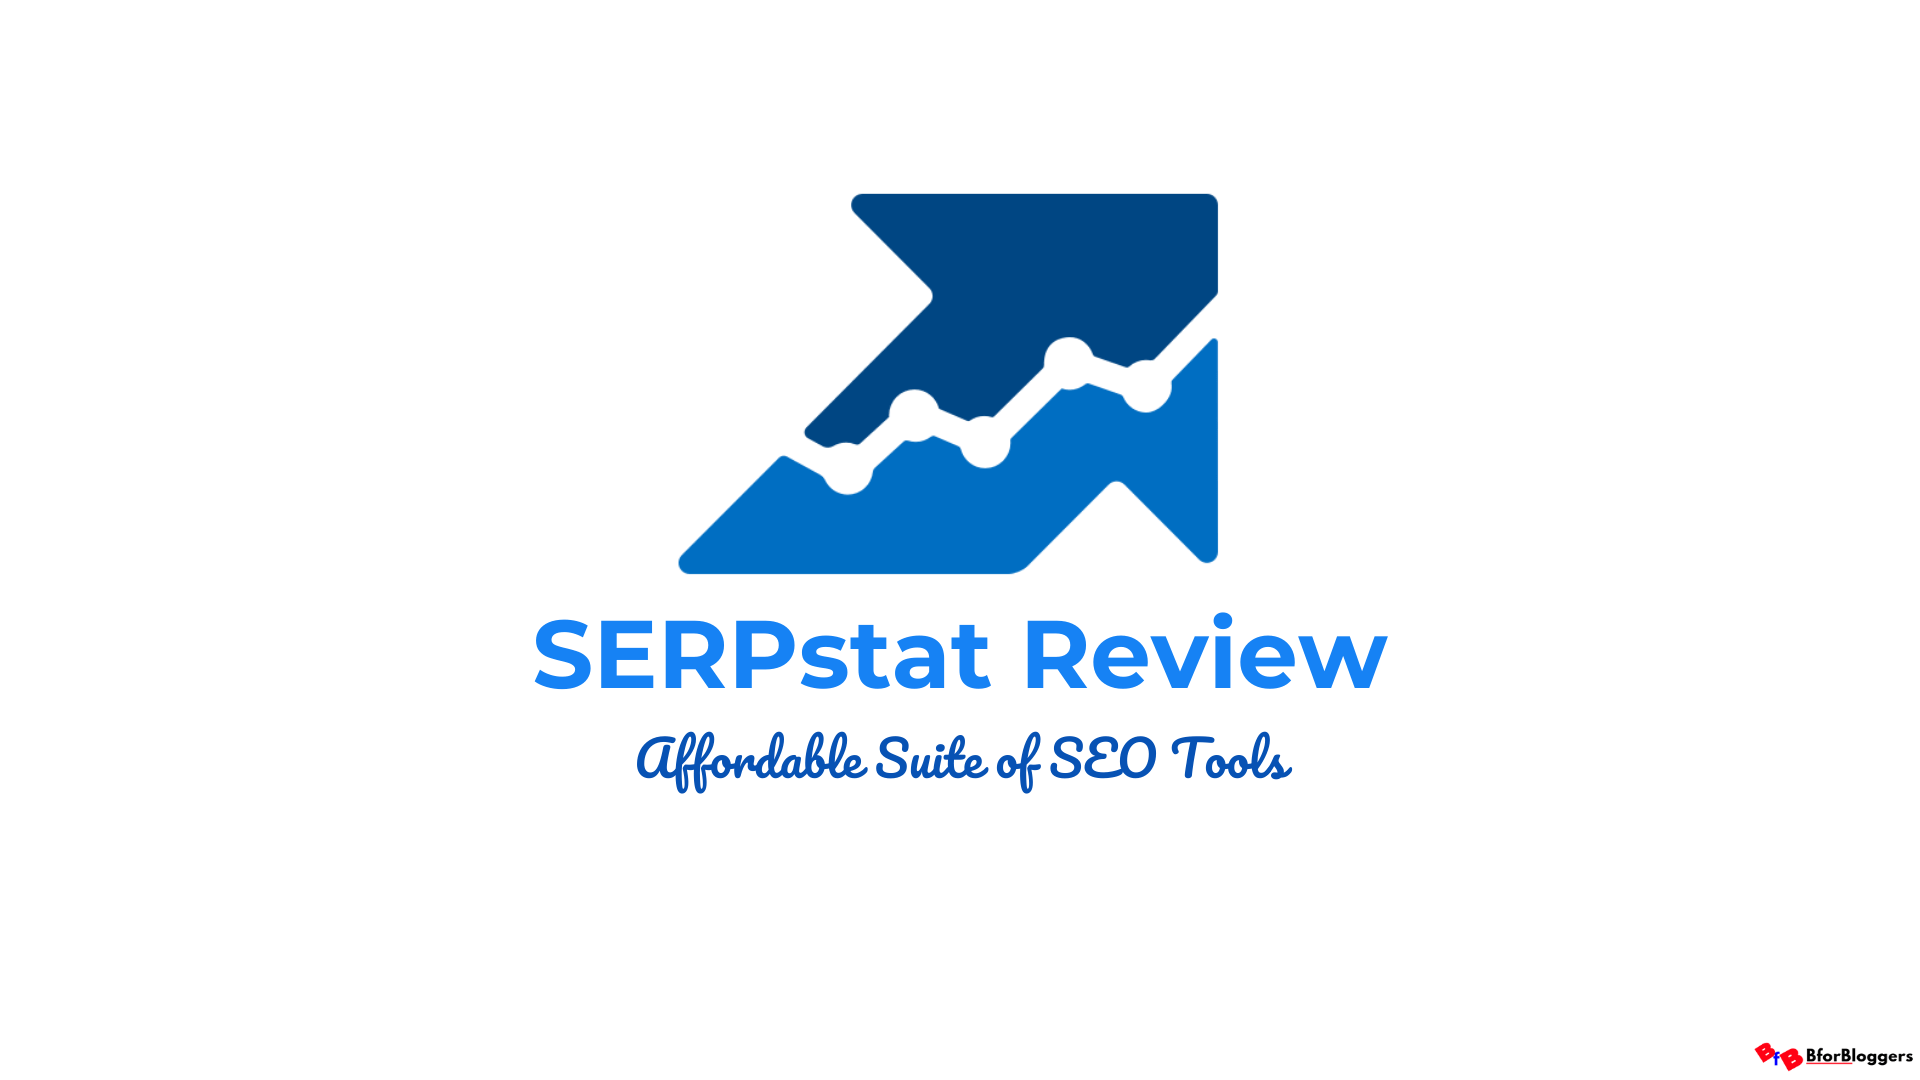 serpstat-review-everything-you-need-to-know